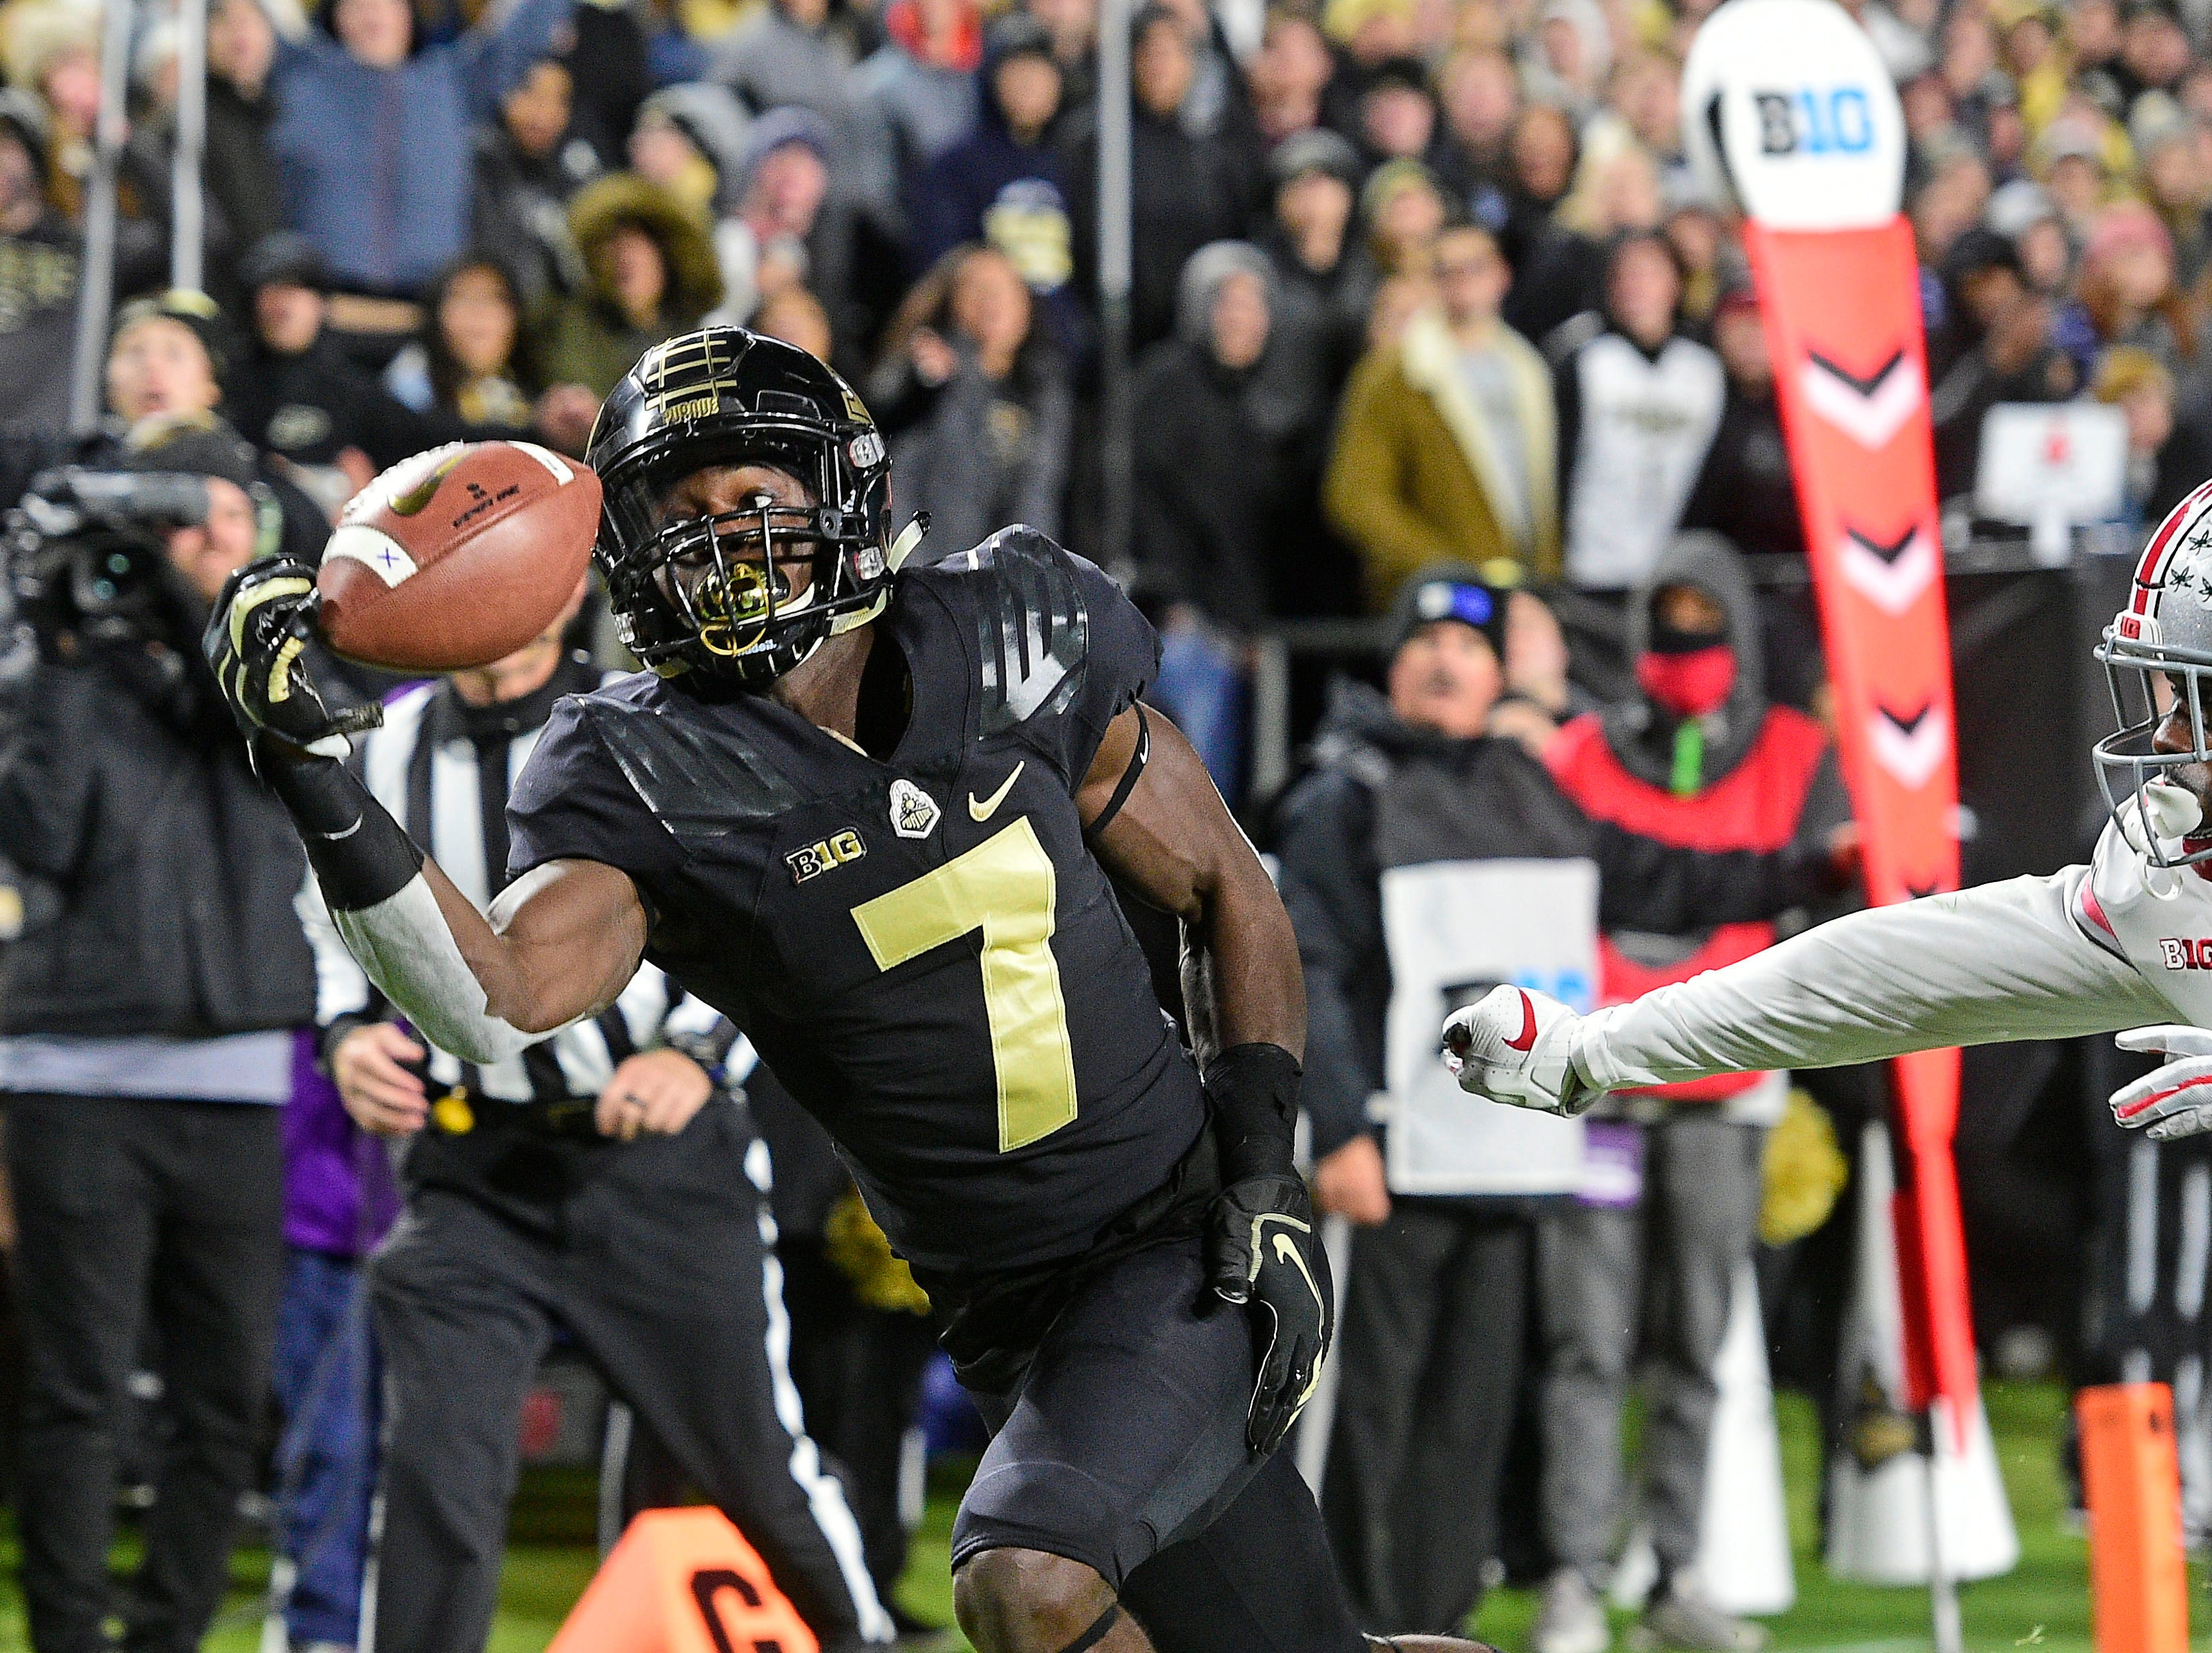 Oct 20, 2018; West Lafayette, IN, USA; Purdue Boilermakers receiver Isaac Zico (7) makes a one handed catch for a first half touchdown against the hit State Buckeyes at Ross-Ade Stadium. Mandatory Credit: Thomas J. Russo-USA TODAY Sports